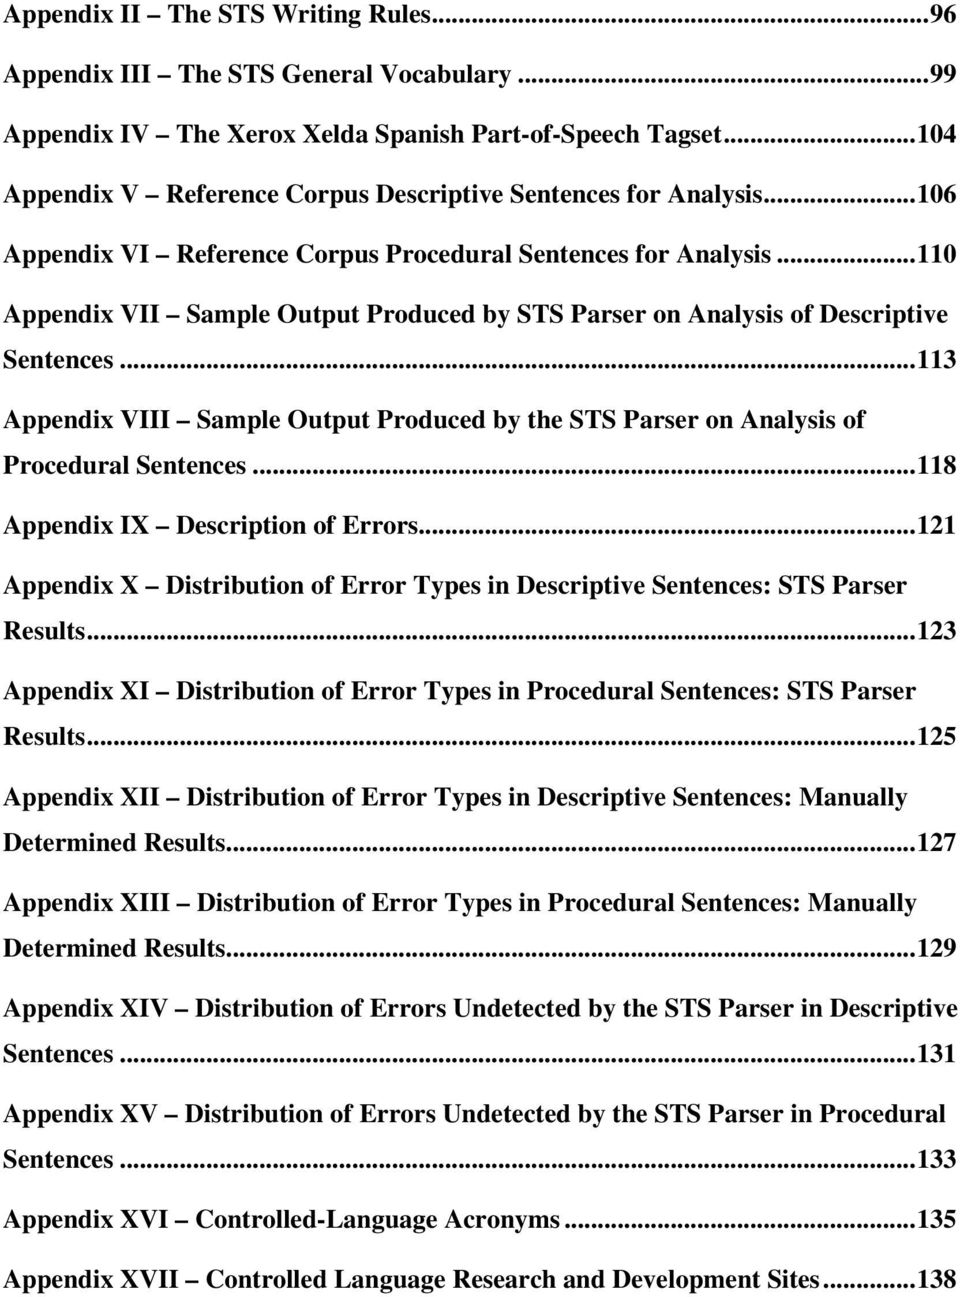 ..110 Appendix VII Sample Output Produced by STS Parser on Analysis of Descriptive Sentences...113 Appendix VIII Sample Output Produced by the STS Parser on Analysis of Procedural Sentences.